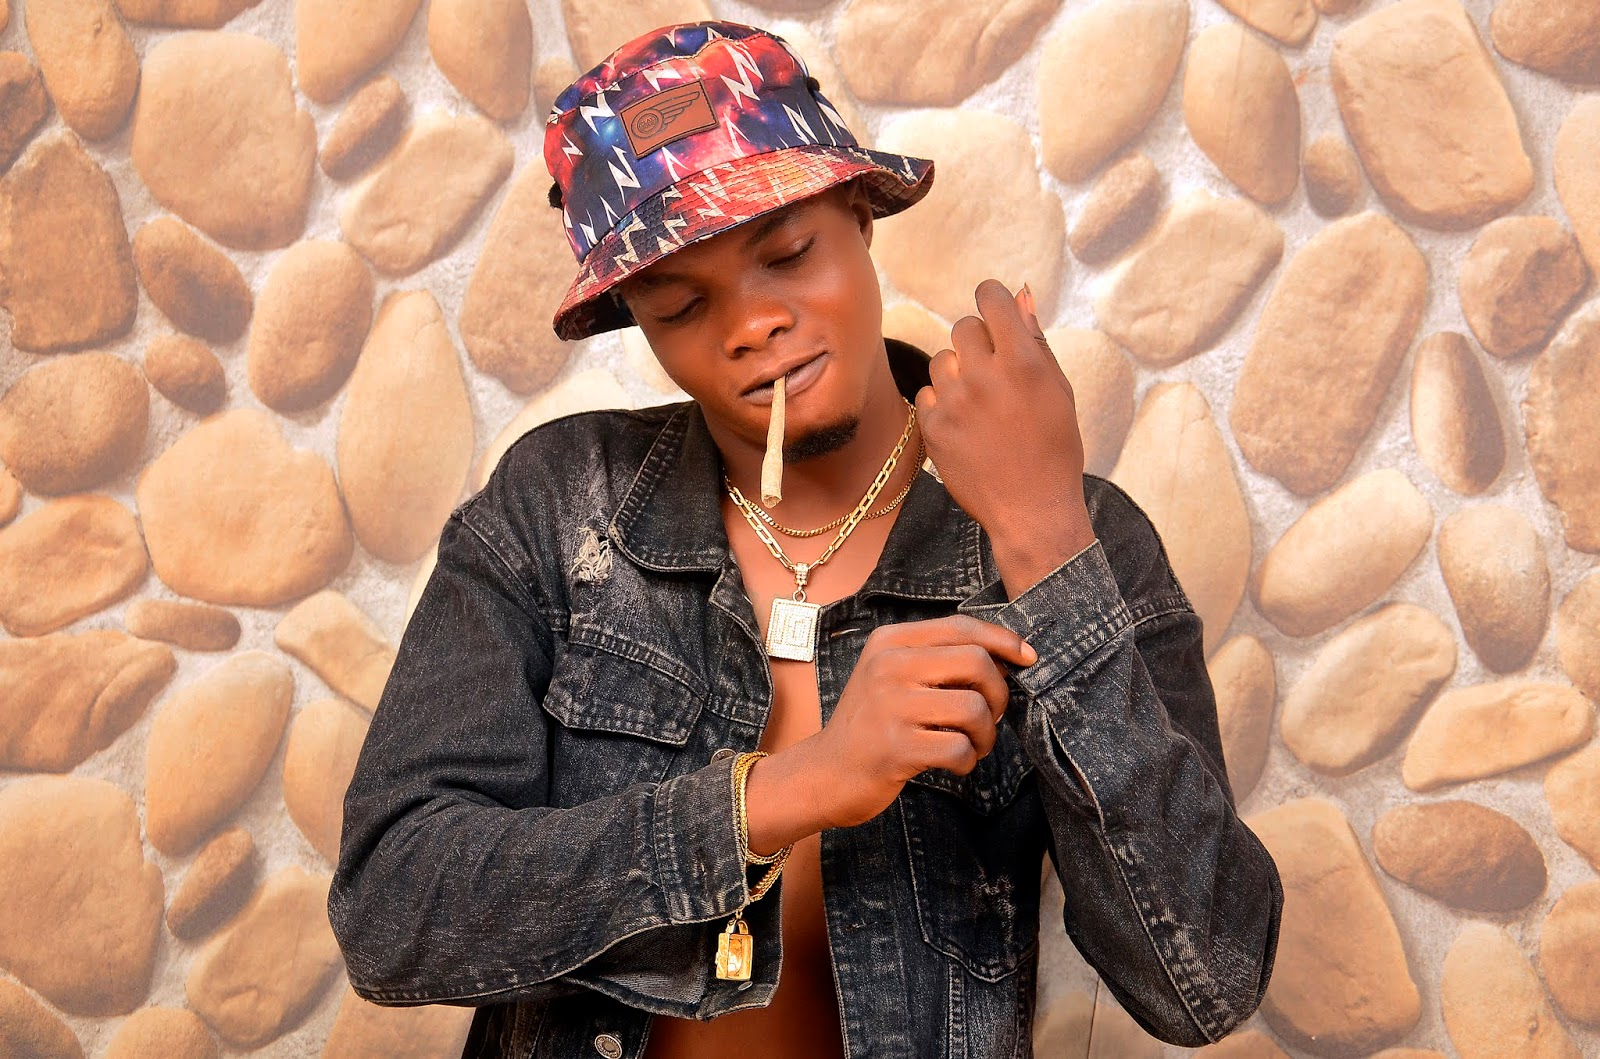 KingEzzy Shares Banging Photos as He Rocks New Look2